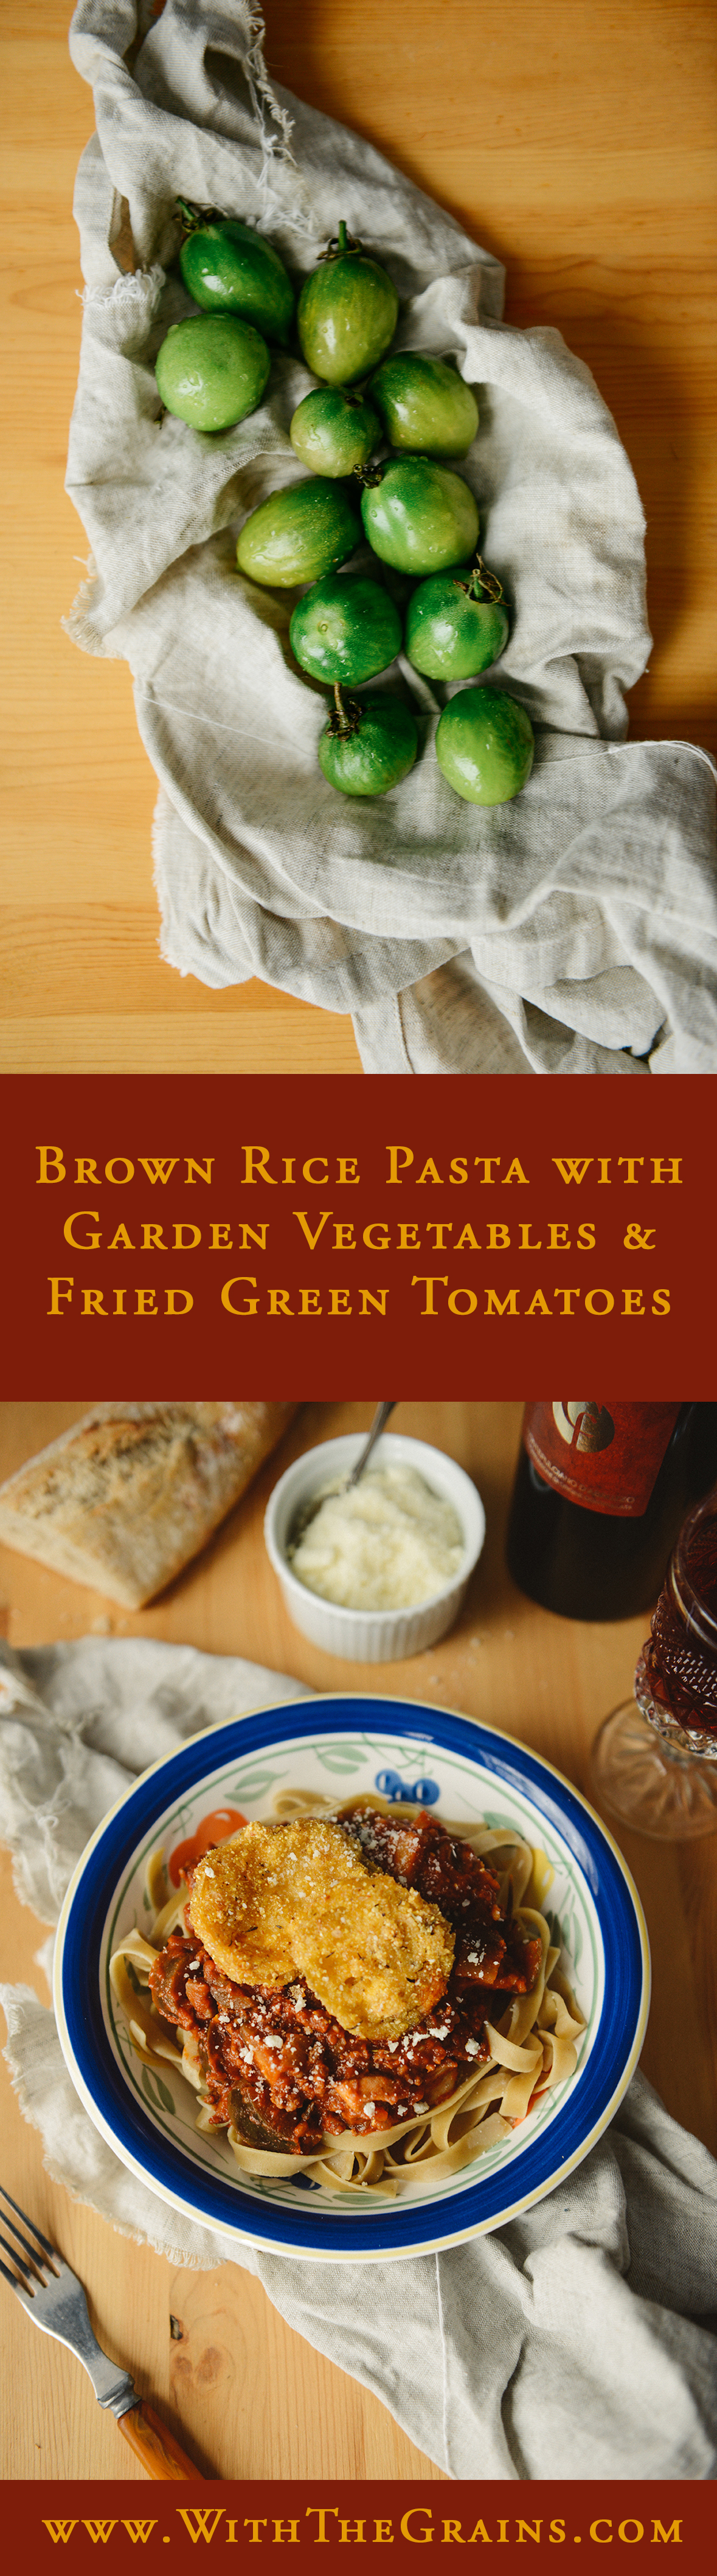 Brown Rice Pasta with Fried Green Tomatoes // www.WithTheGrains.com